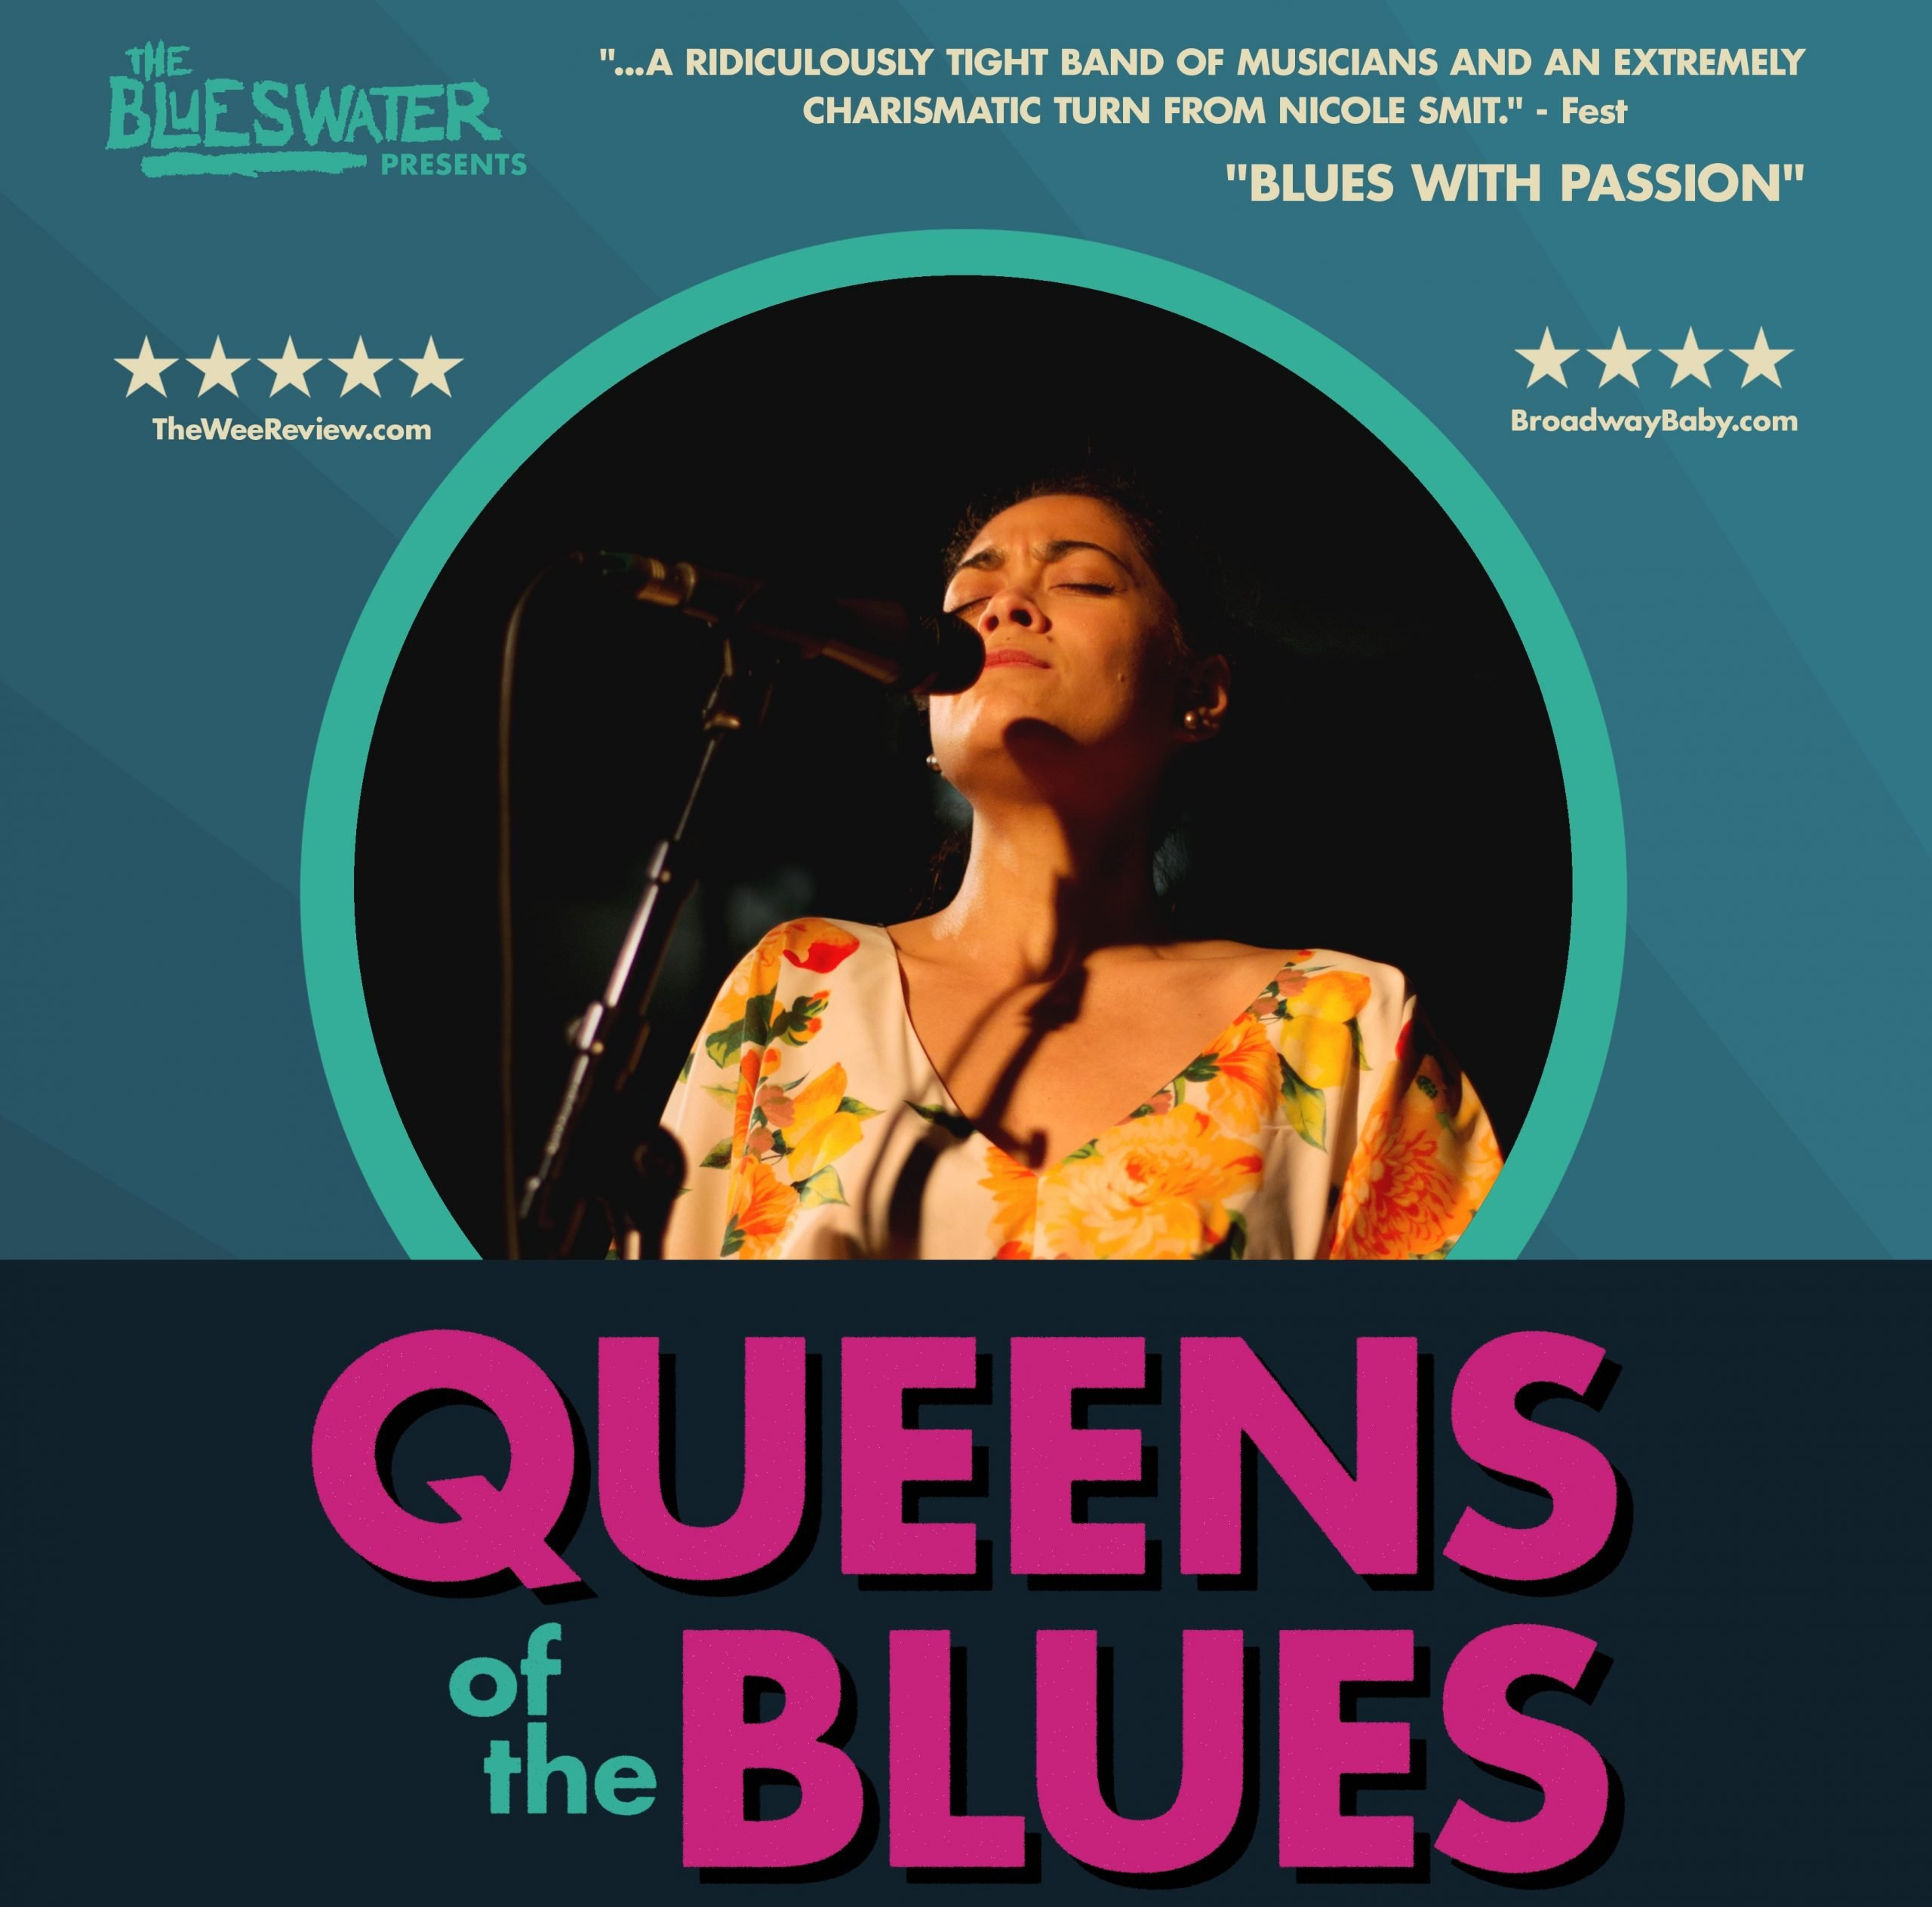 Cancelled - Queens of the Blues